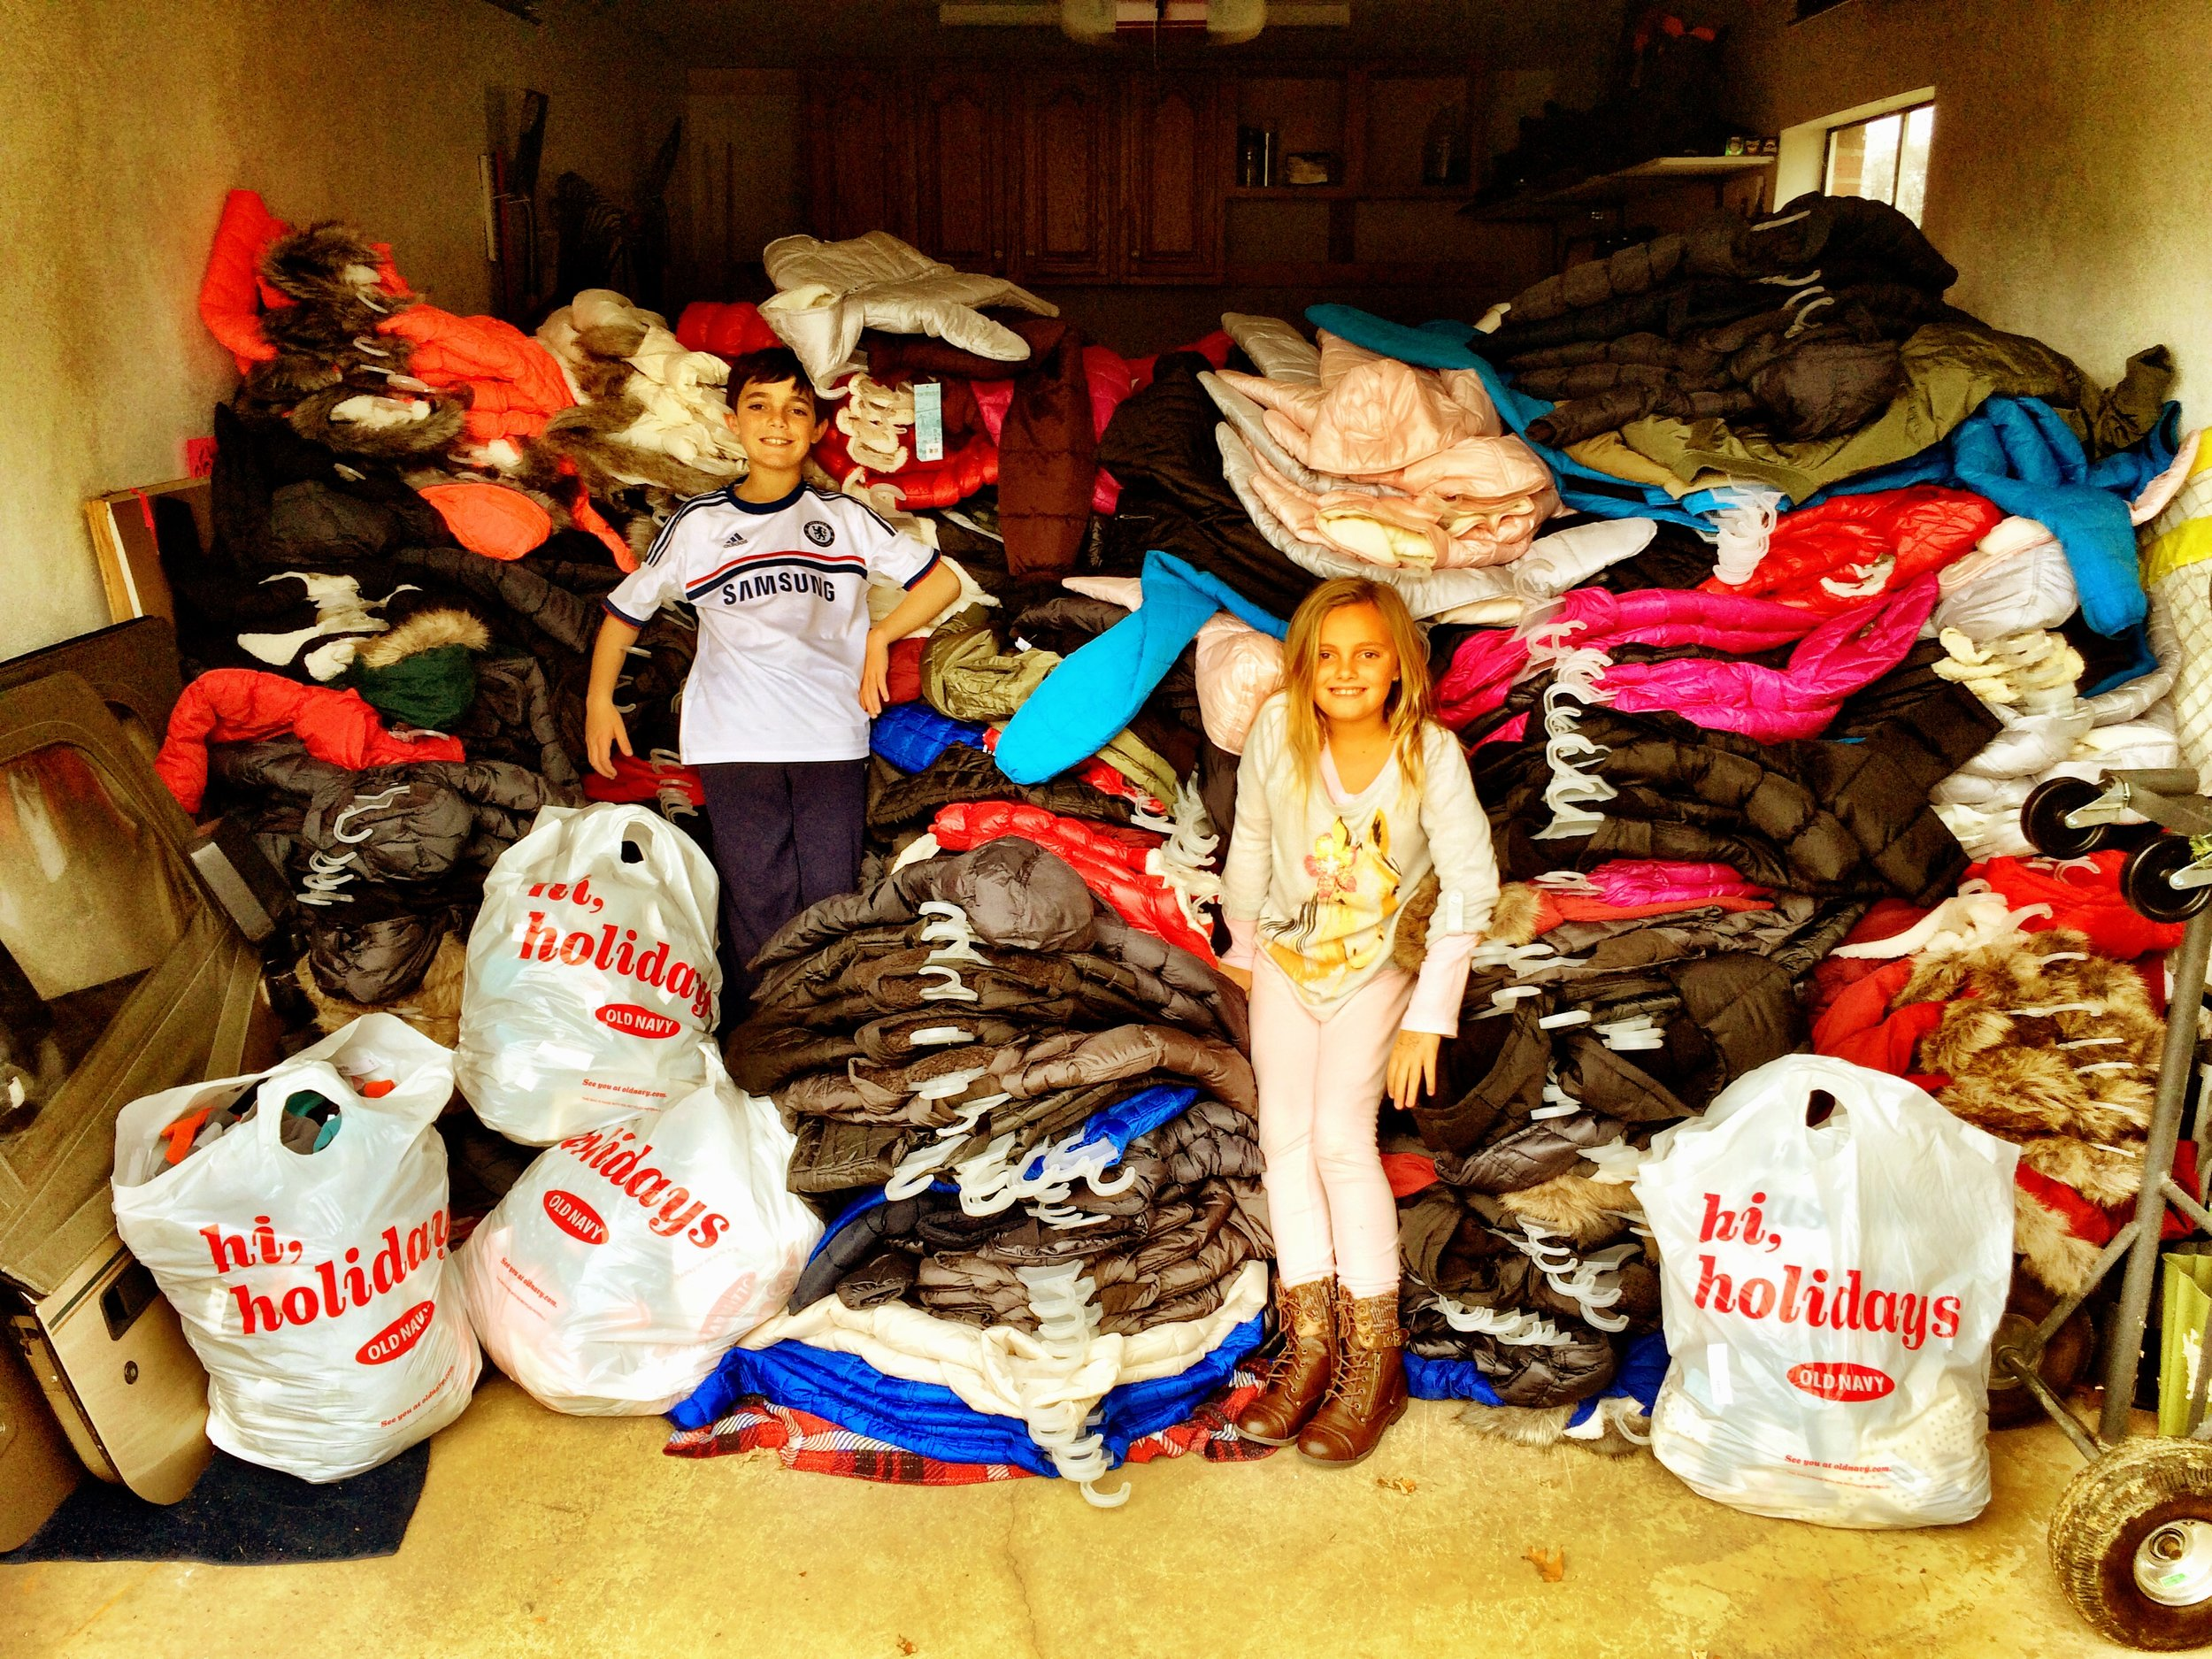 Max and Chloe help unload the truck full of coats.